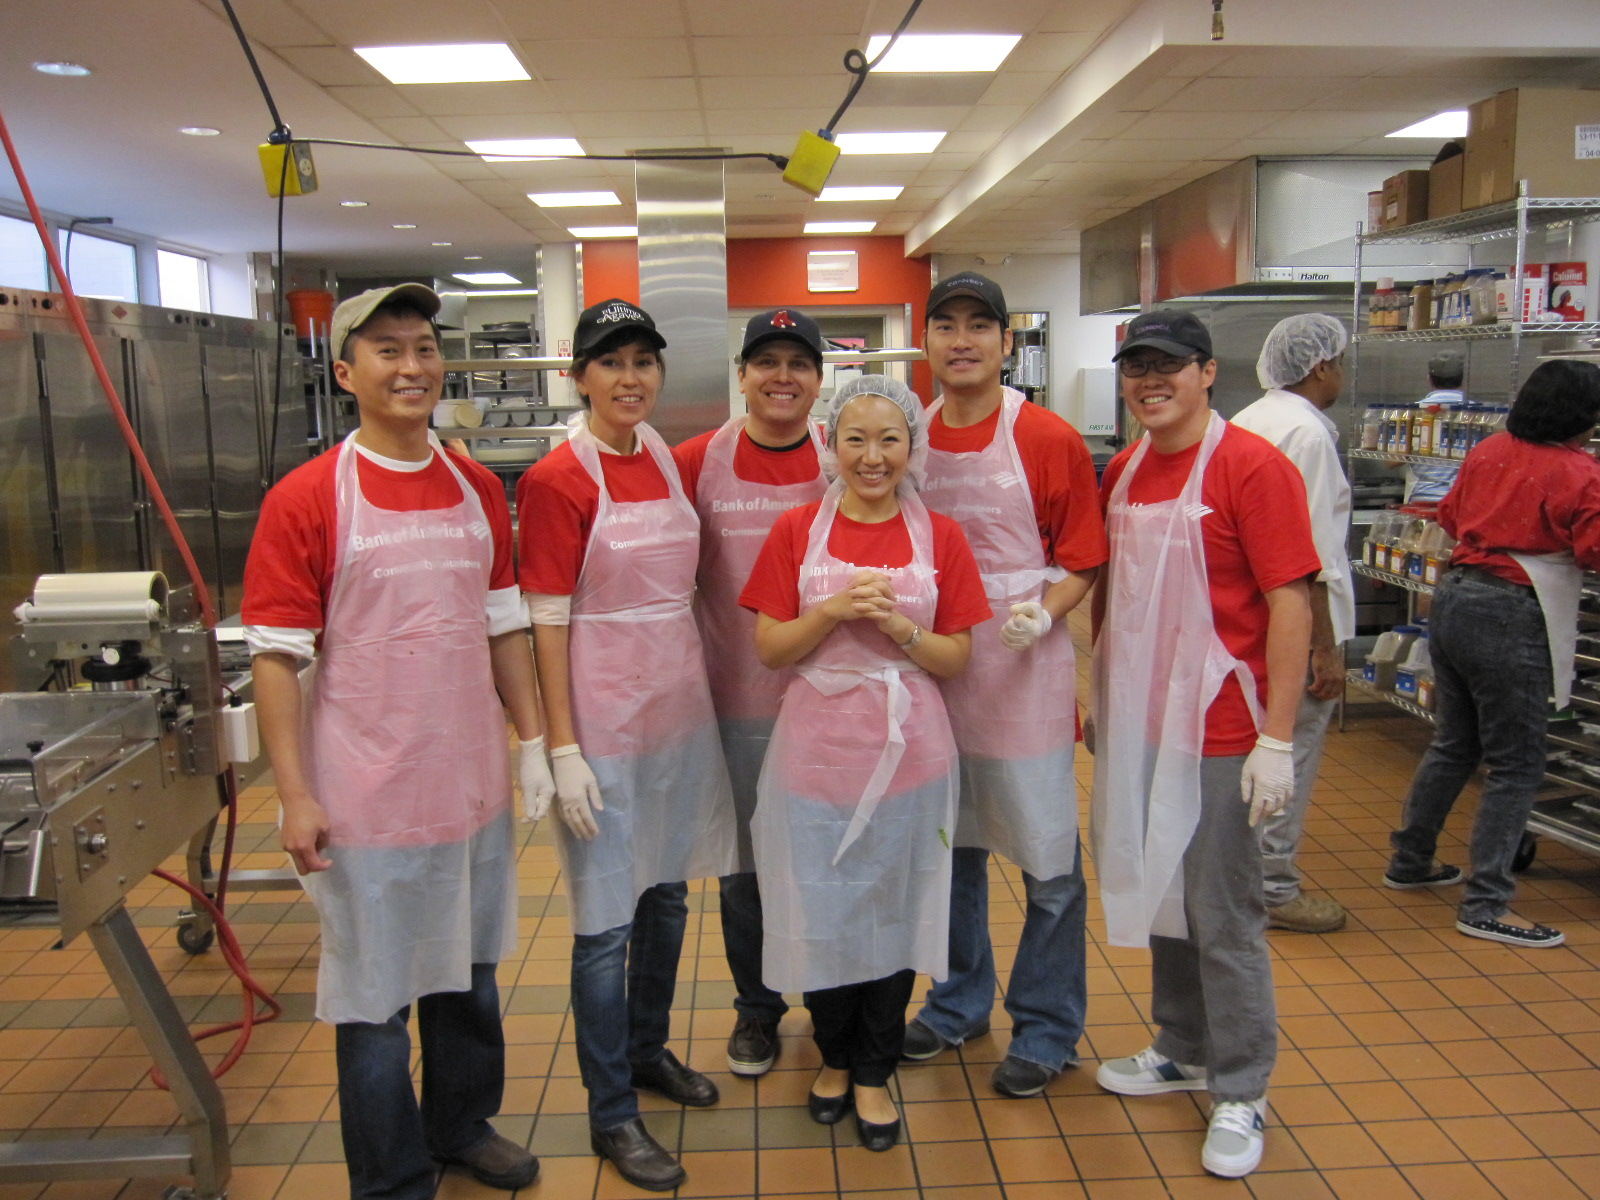 Volunteer Team Bank of America in Kitchen